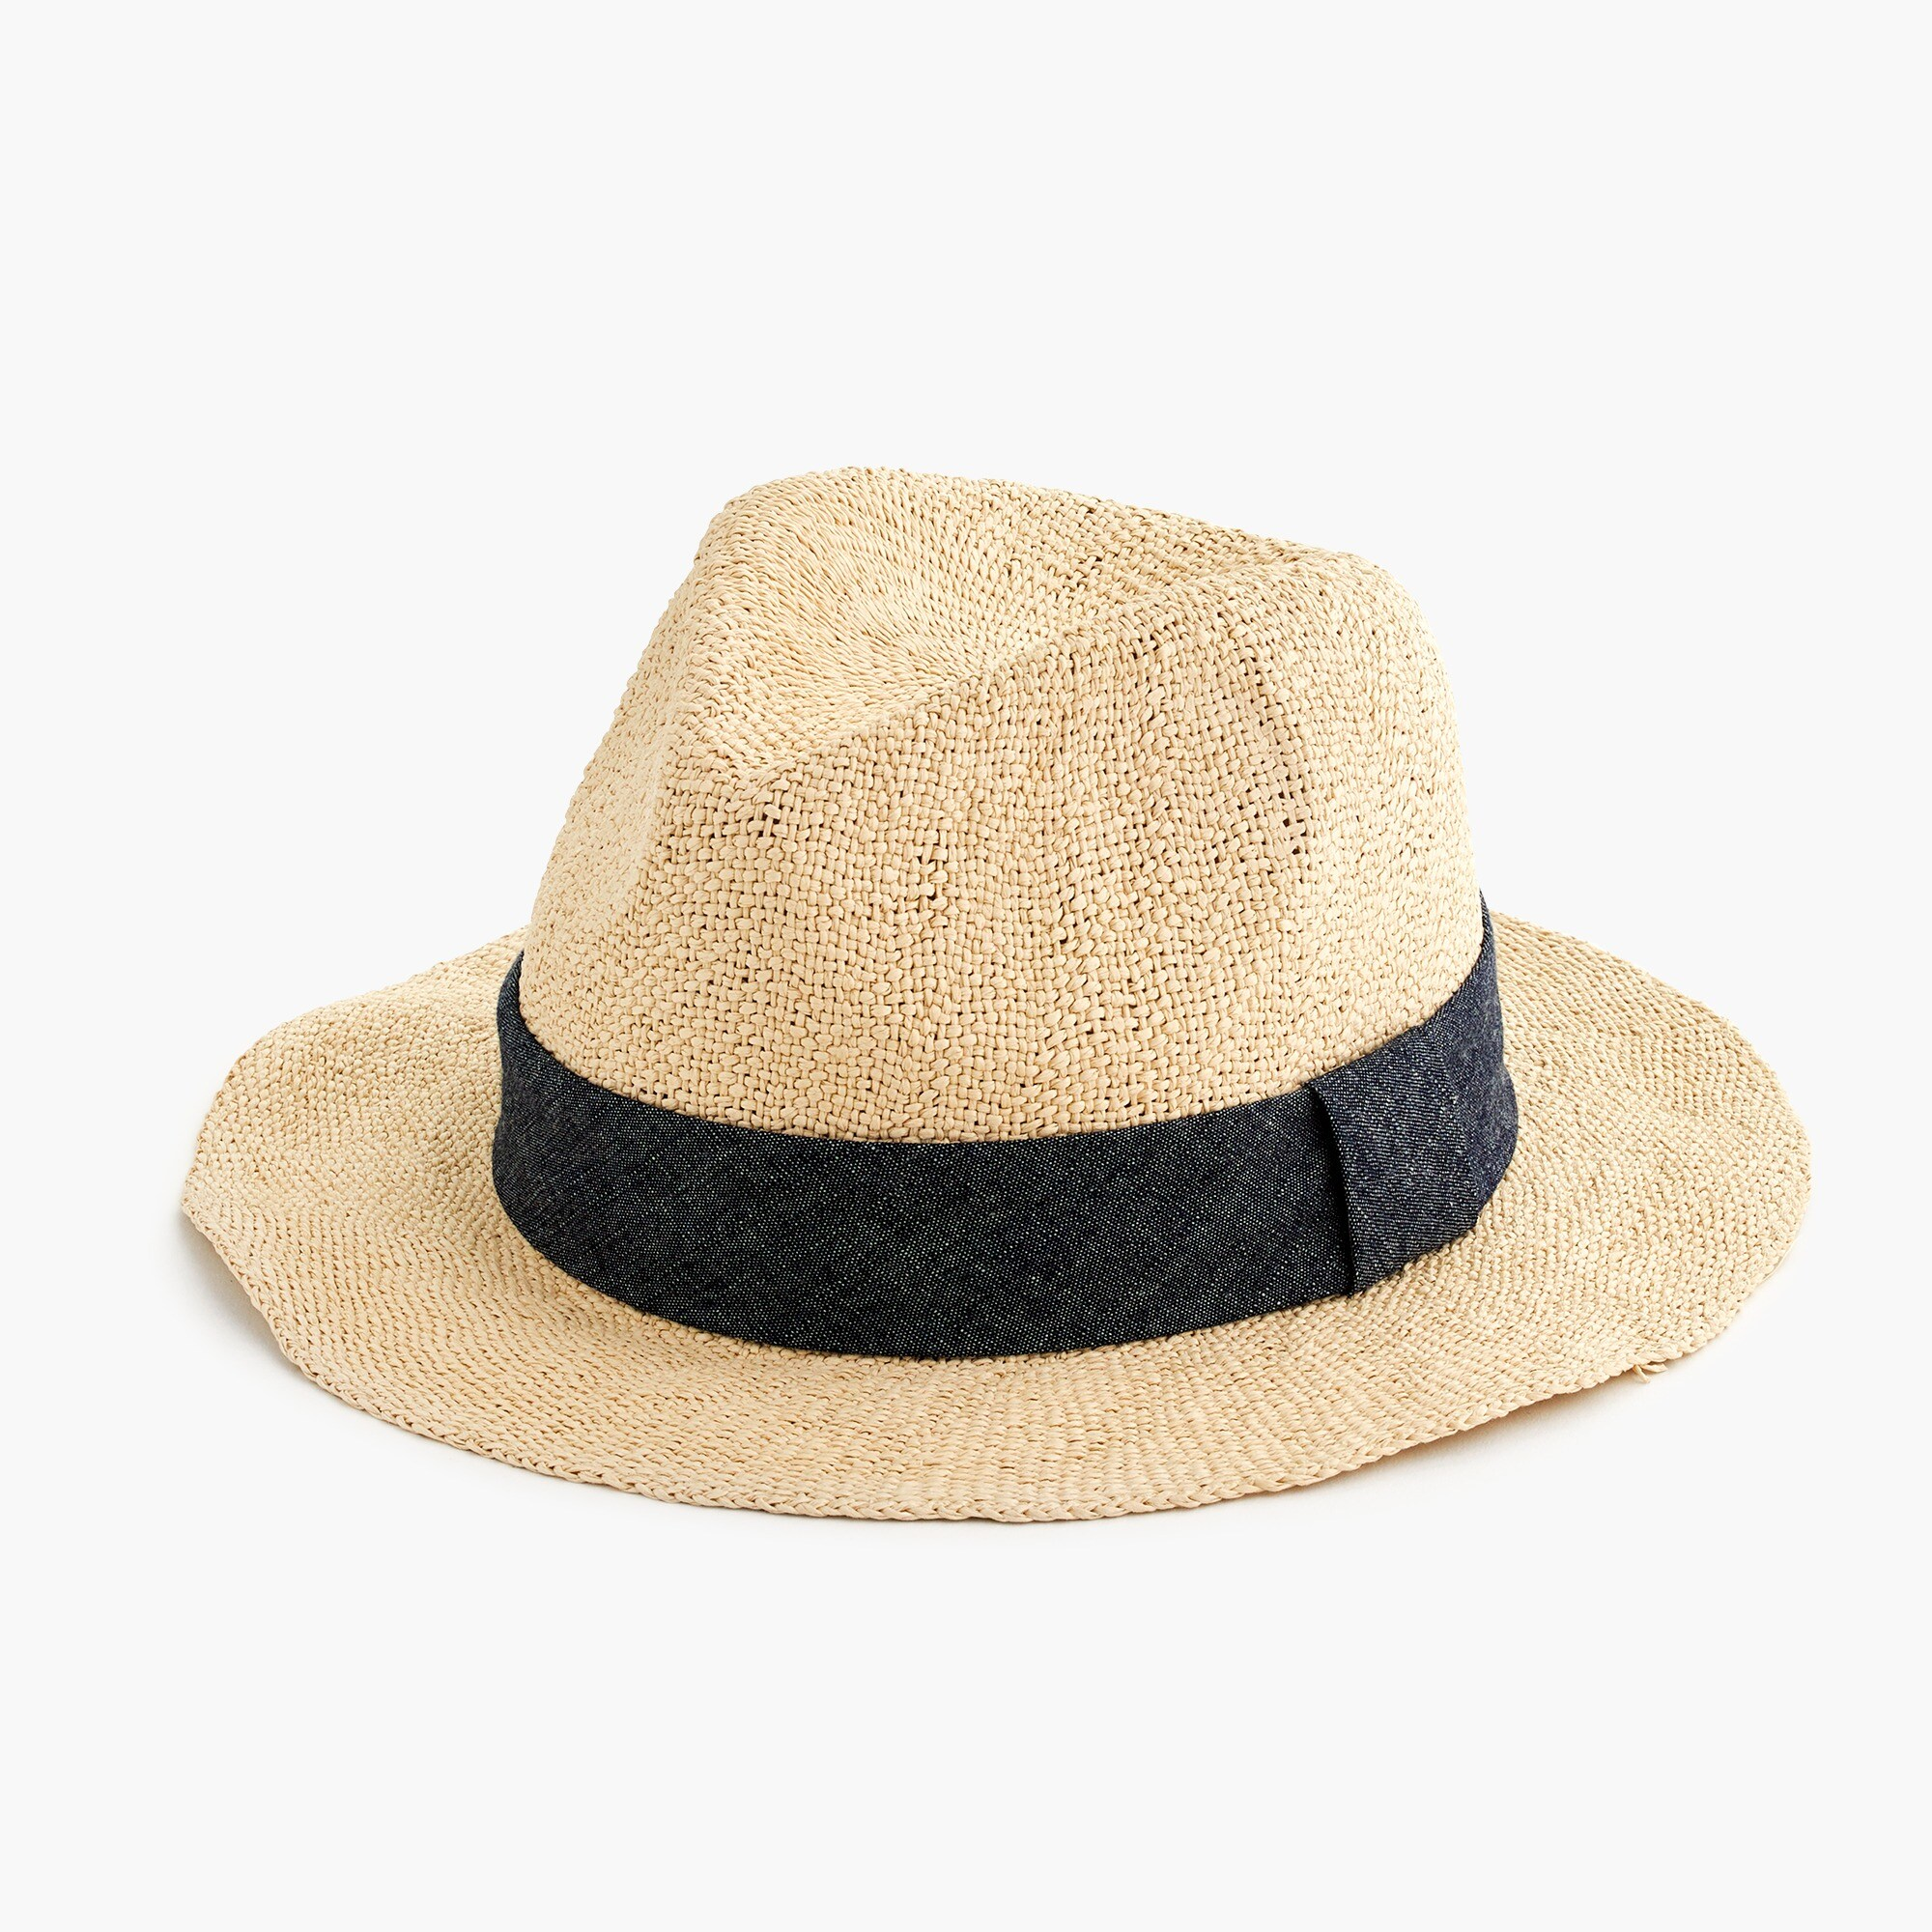 Packable panama hat men new arrivals c